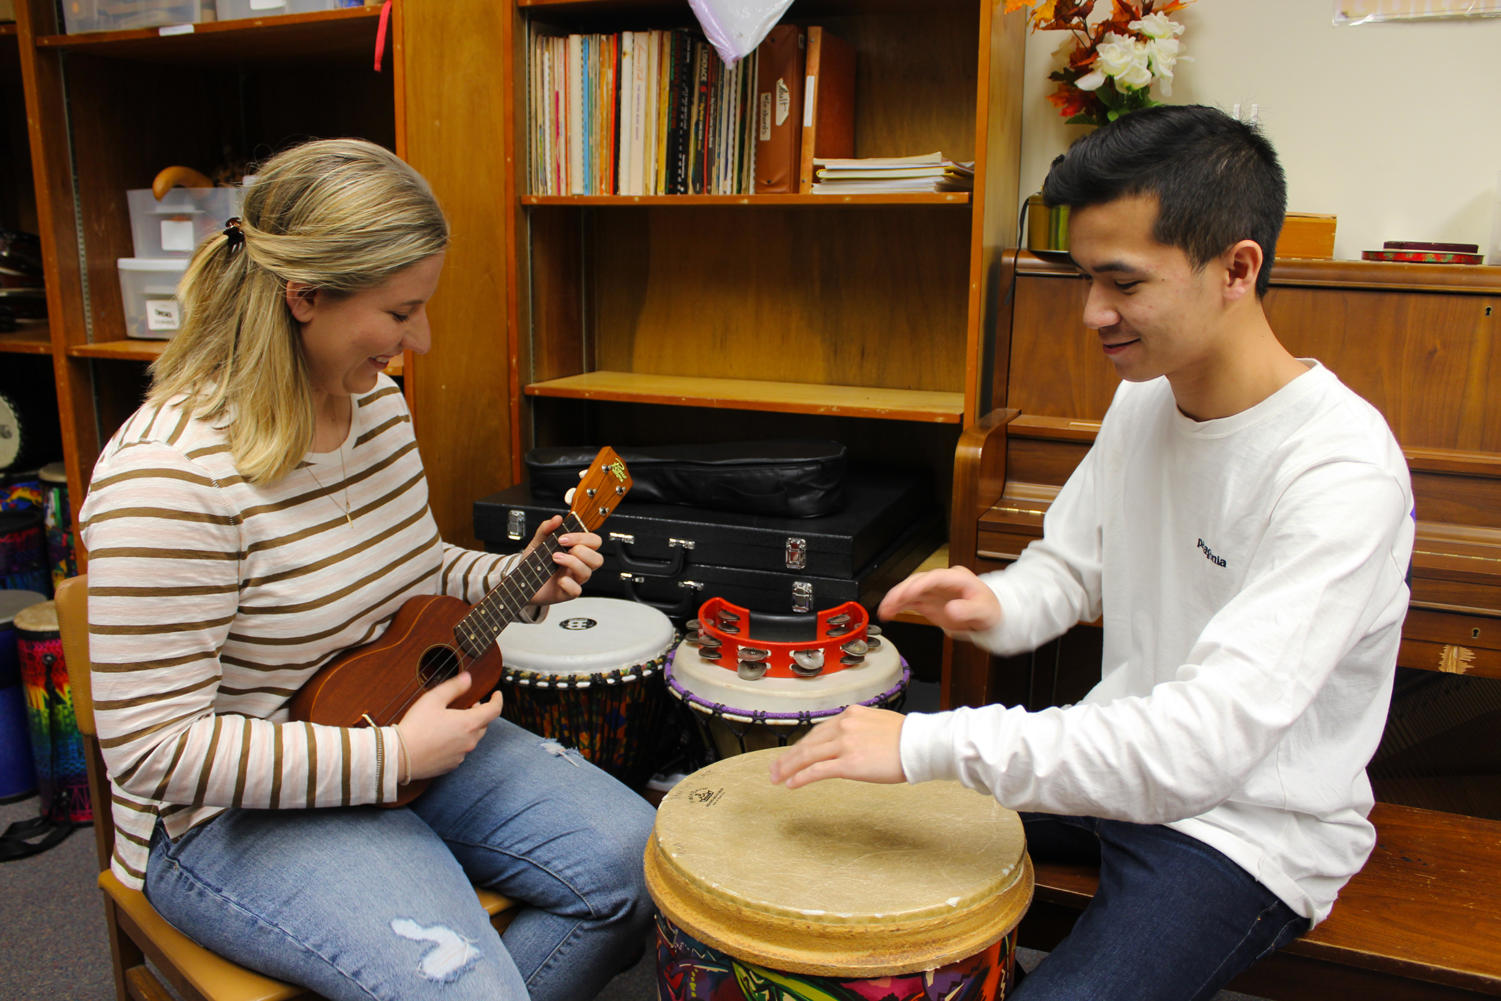 Music therapy seniors Katarina Prasso (left) and Calvin Tran (right) practice playing instruments Wednesday in the department's music lab. Music therapy majors are required to proficiently play a variety of instruments used in therapeutic sessions. Photo credit: India Yarborough